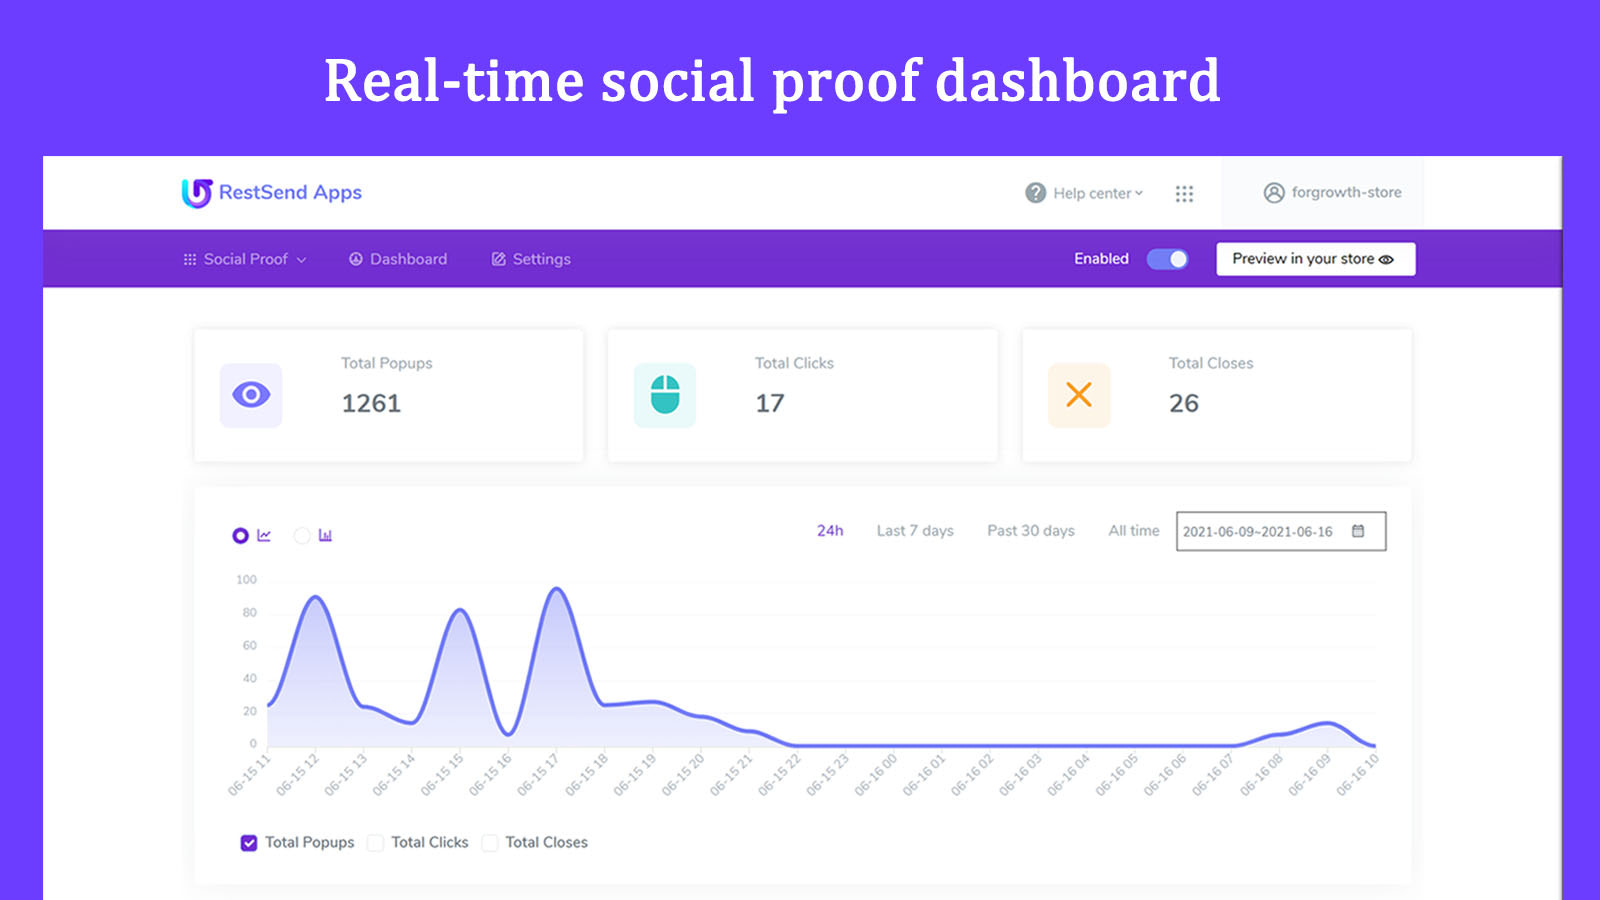 Real-time social proof dashboard